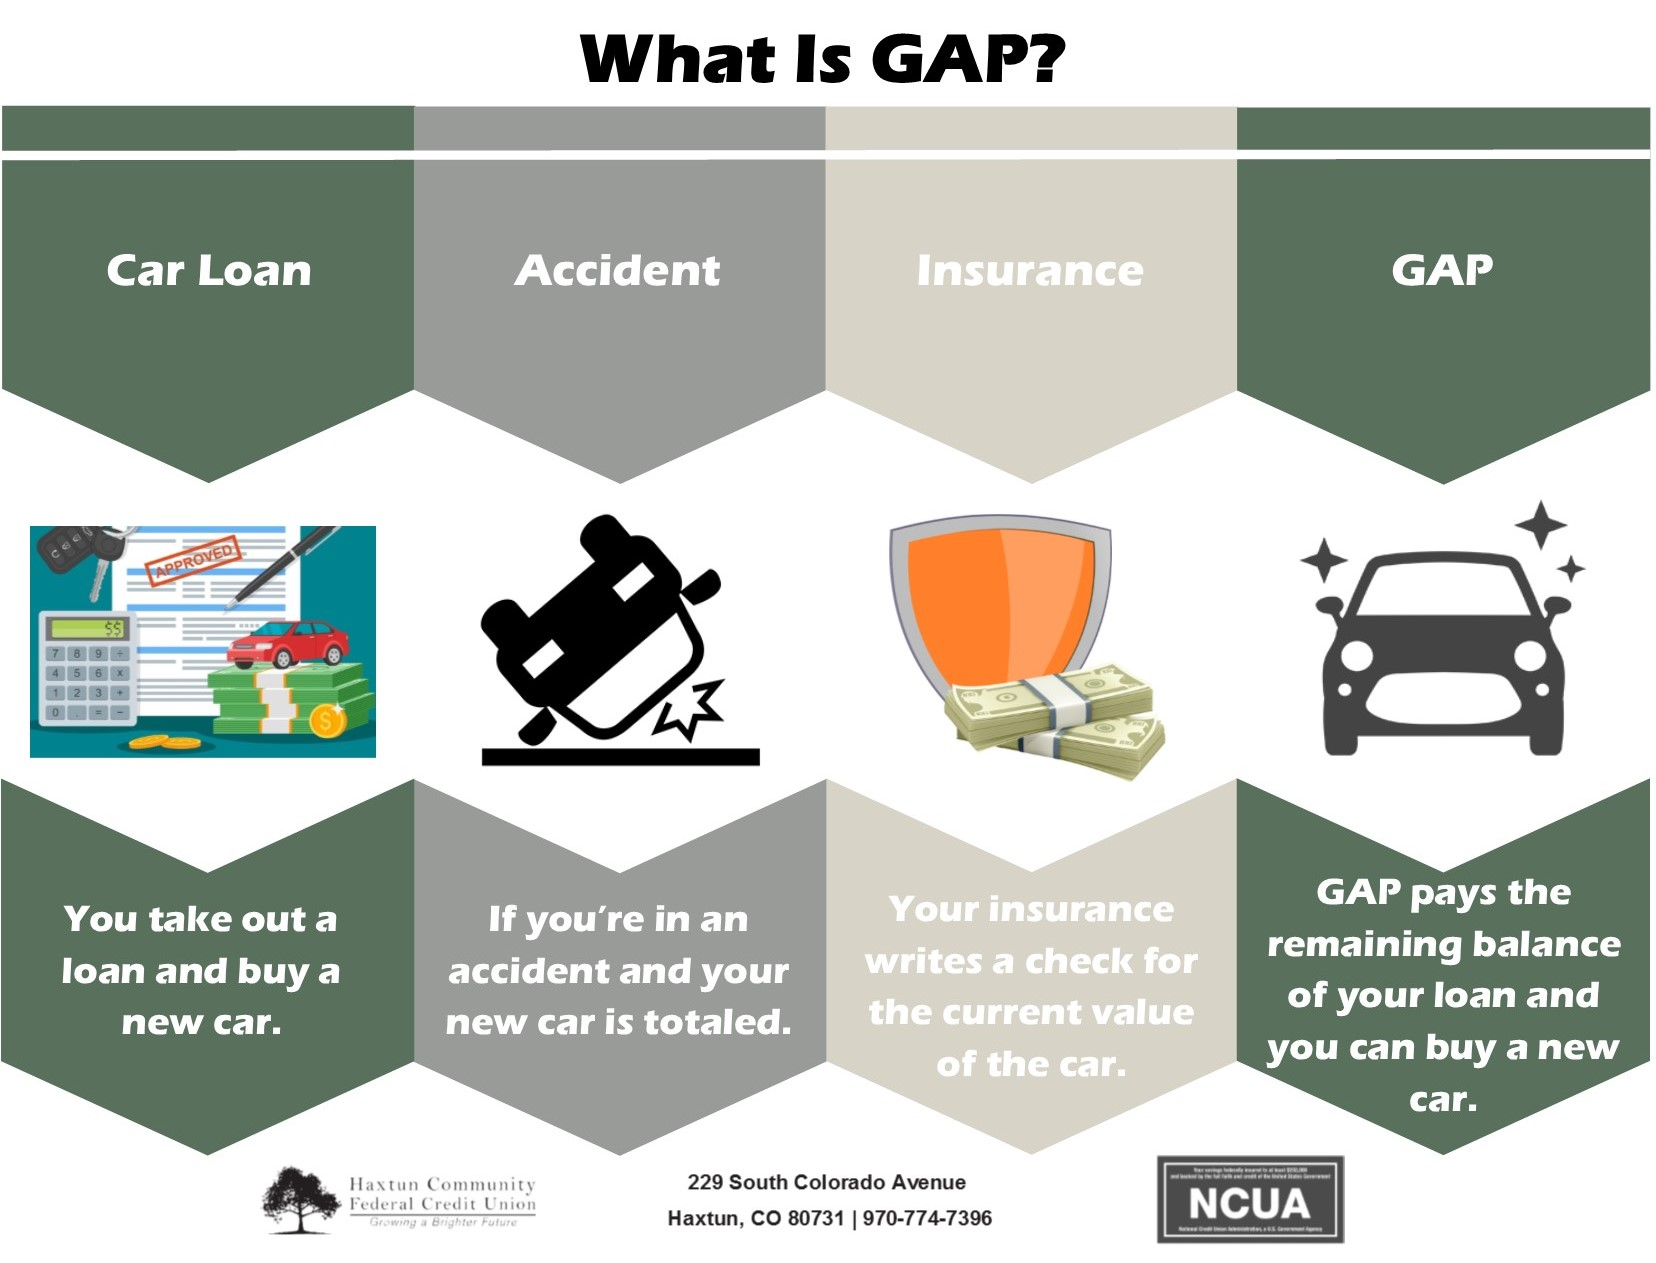 What is GAP?